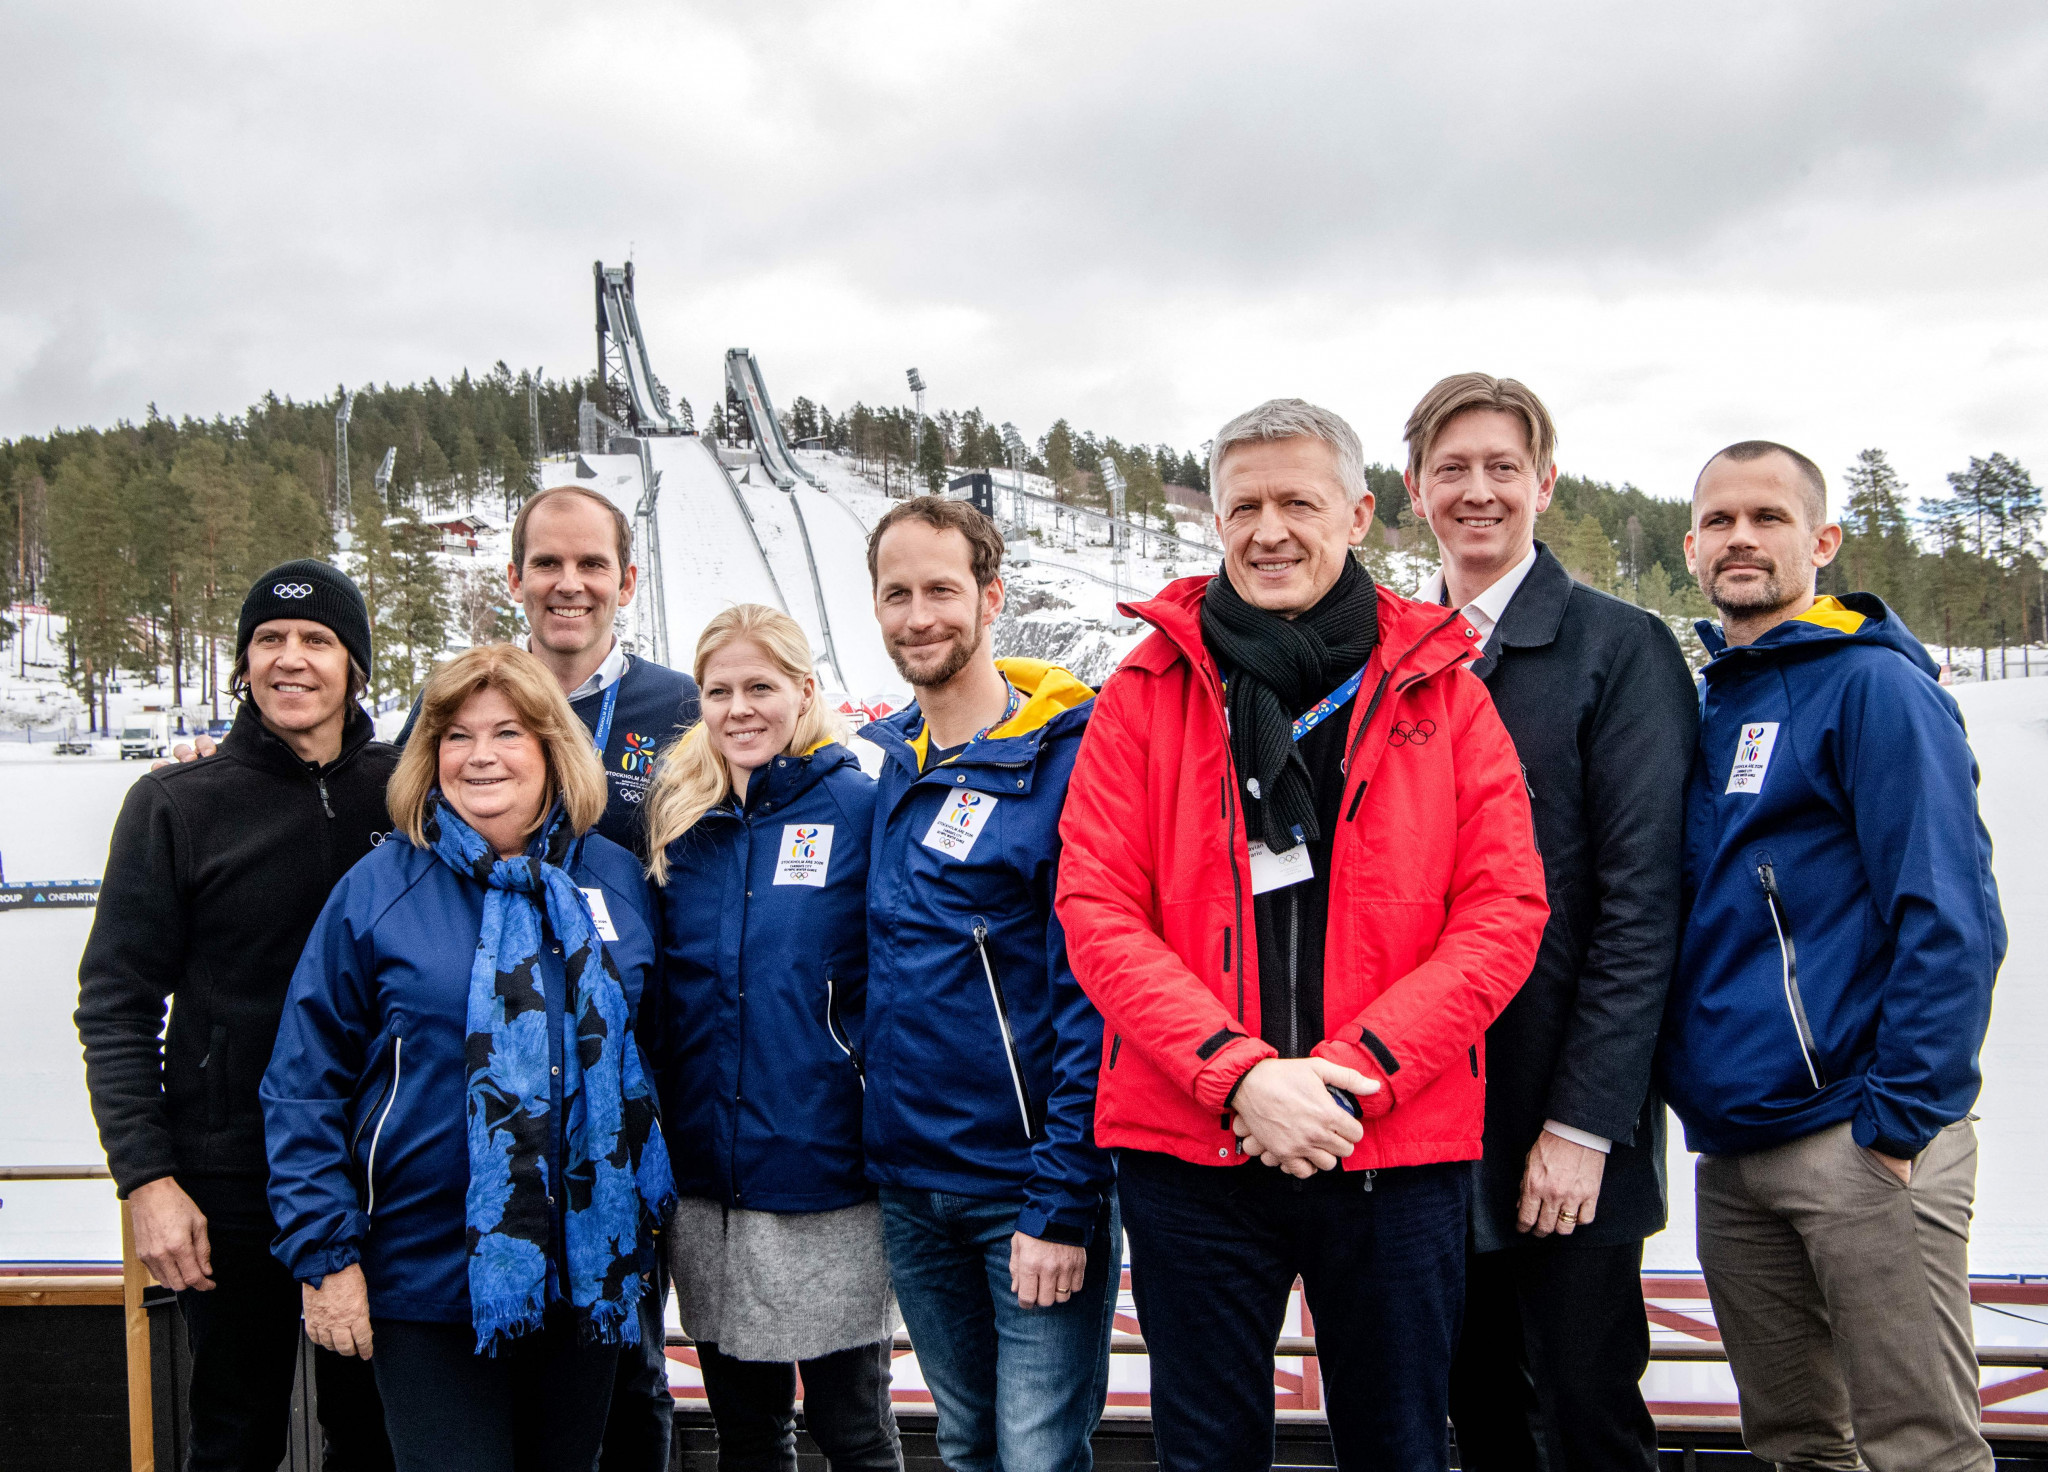 Richard Brisius, second from left at the back, is the chief executive of Stockholm Åre 2026 ©Getty Images